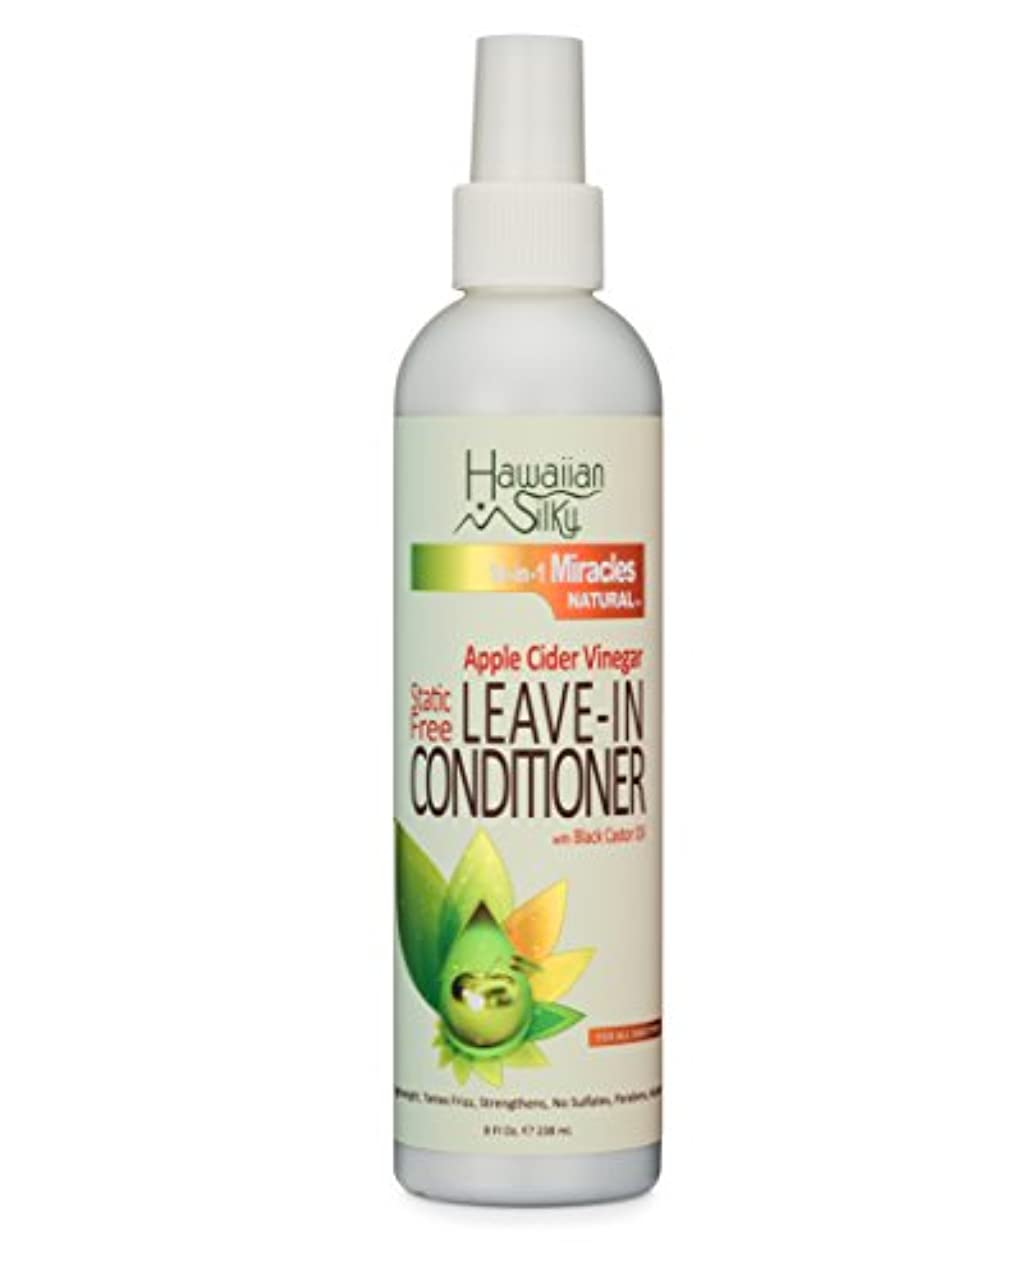 Hawaiian Silky Static-Free Apple Cider Vinegar Leave-in Conditioner, 8 fl oz - Black Castor Oil Extract for Hair Growth - 100% Natural Treatment Men, Women & Kids - Good on Color Treated Scalp